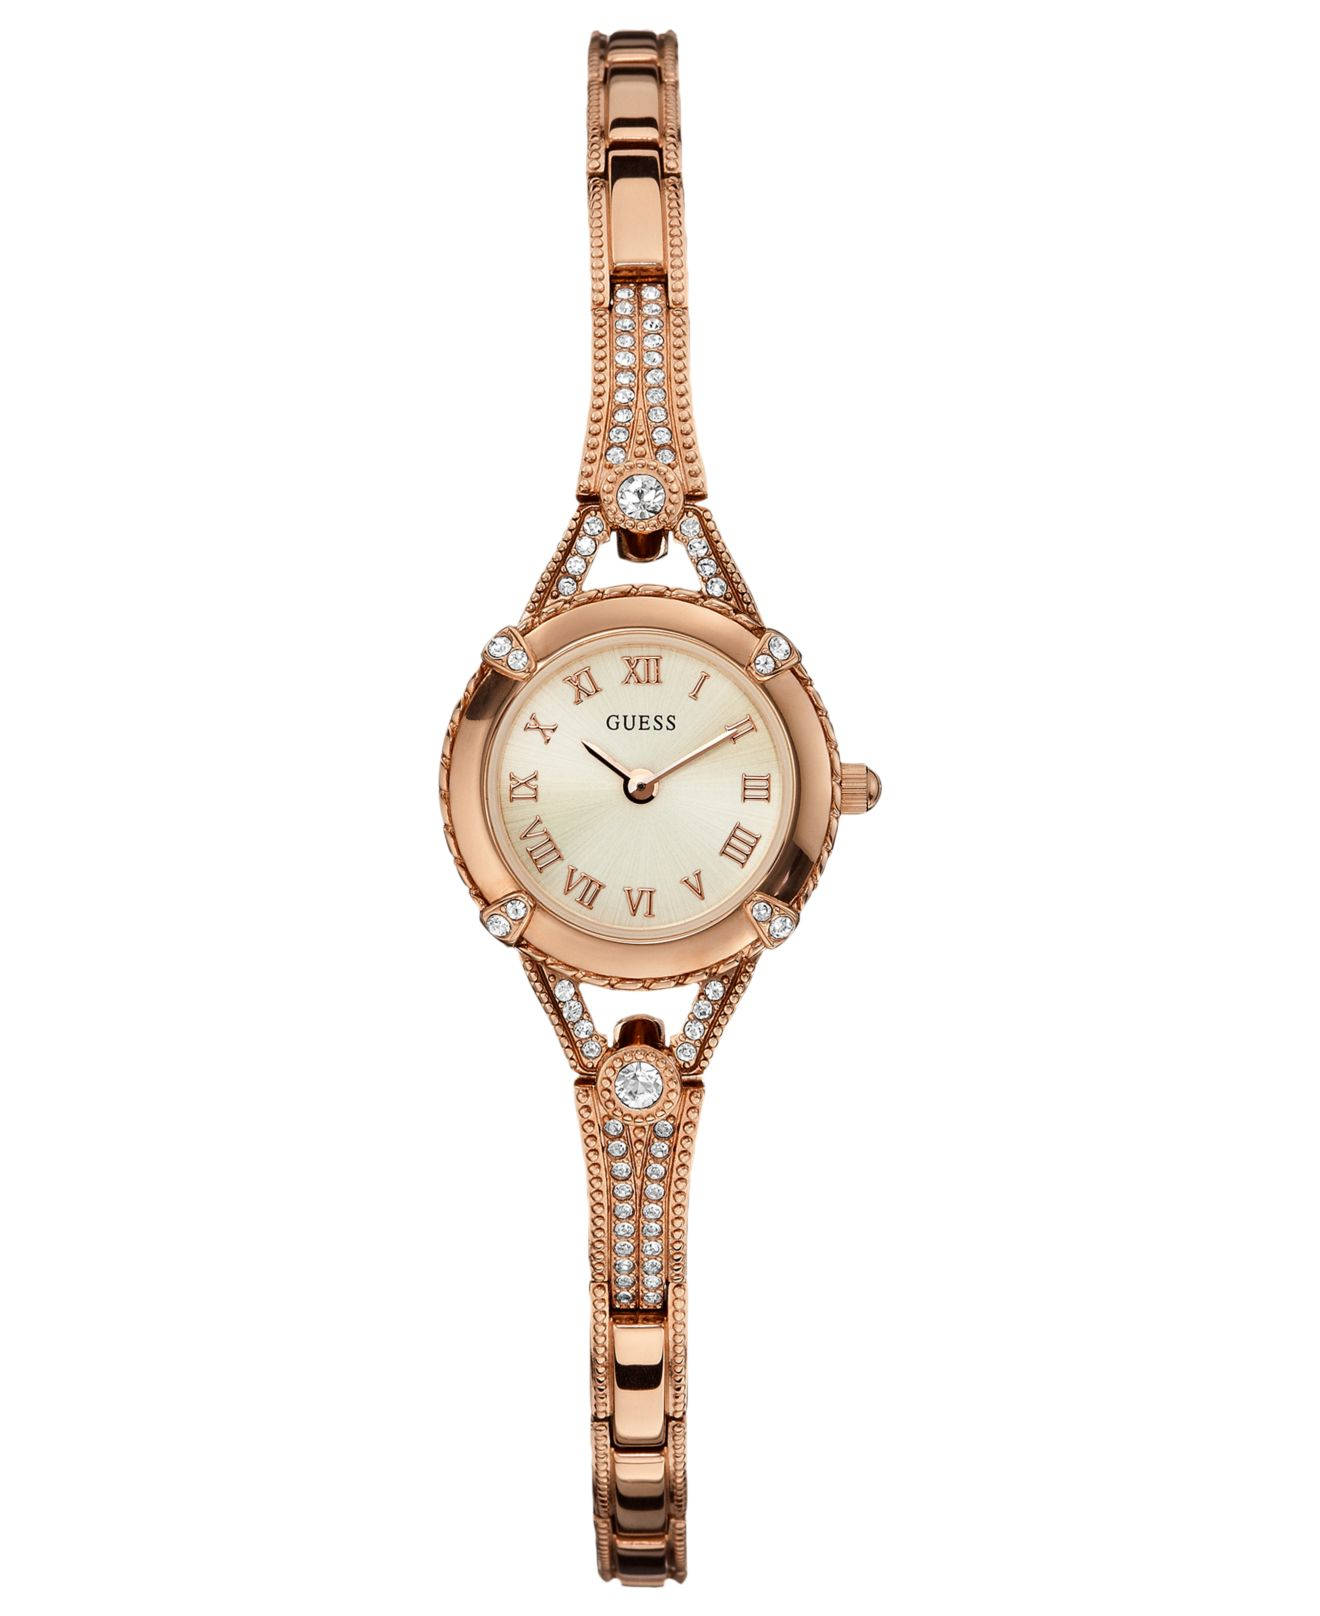 Guess women 39 s rose gold tone bracelet 22mm u0135l3 in pink lyst for Watches guess